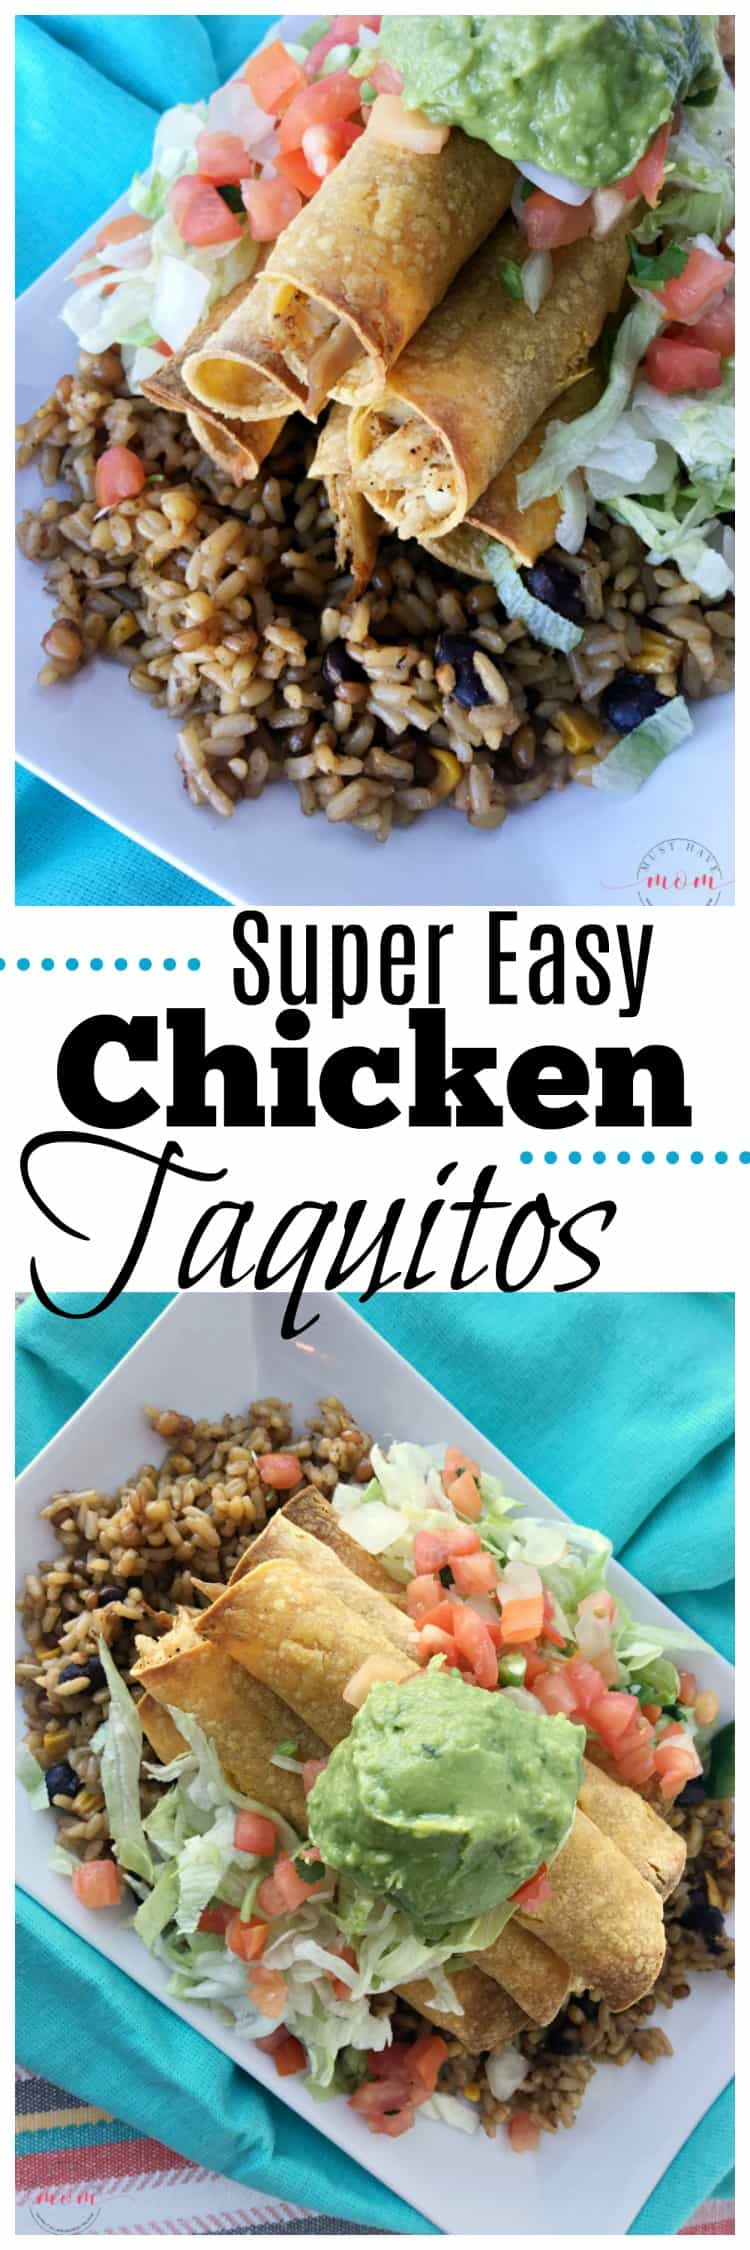 Super easy baked chicken taquito recipe! Fun kids cooking recipes and one of my favorite chicken recipes.